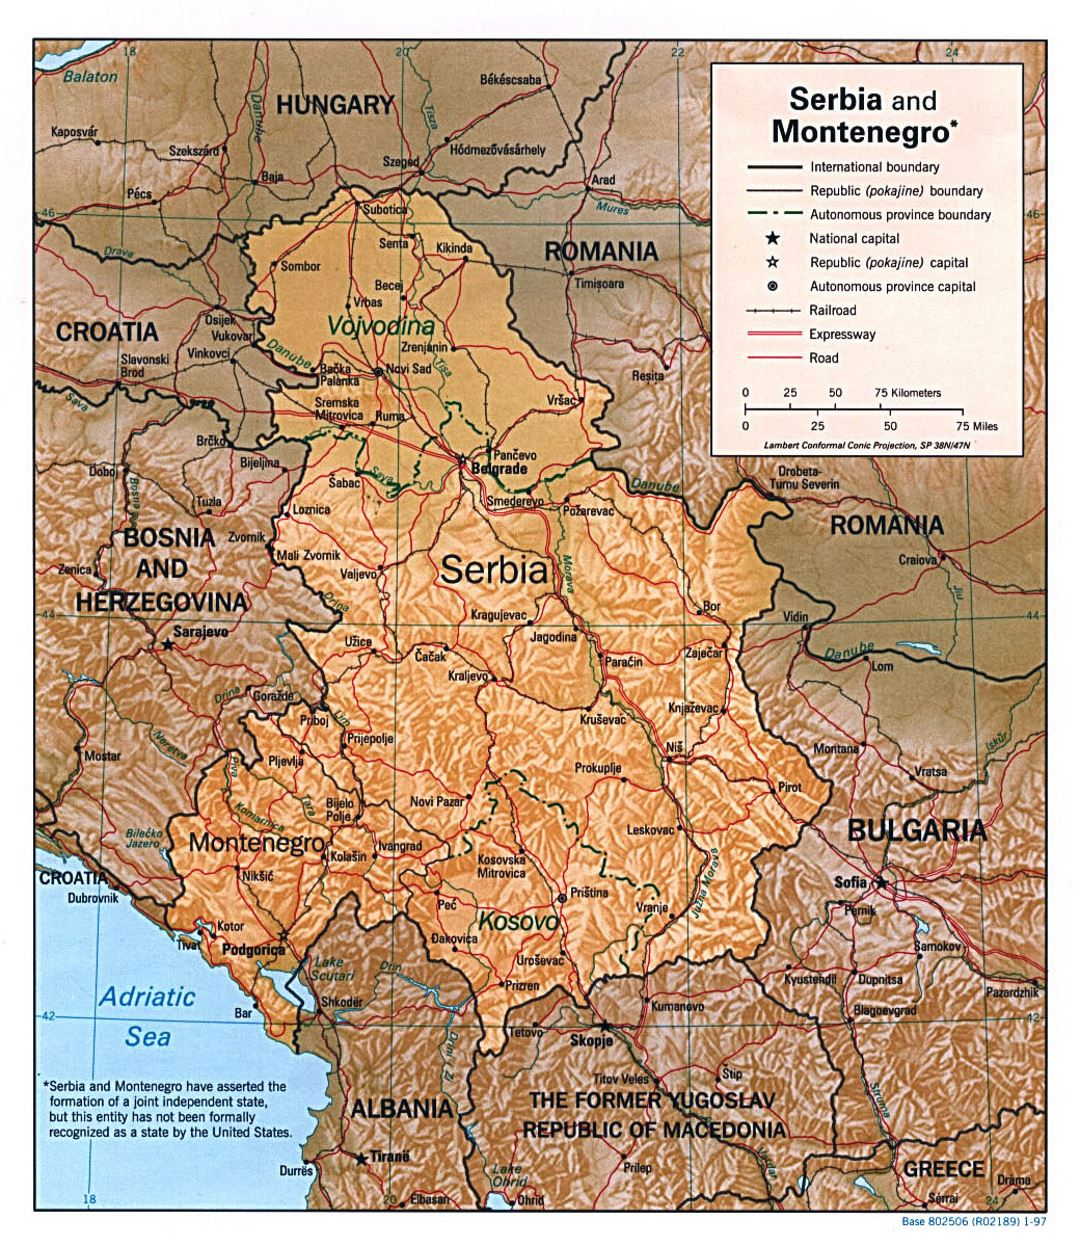 Detailed political map of Serbia and Montenegro with relief, roads, railroads and major cities - 1997